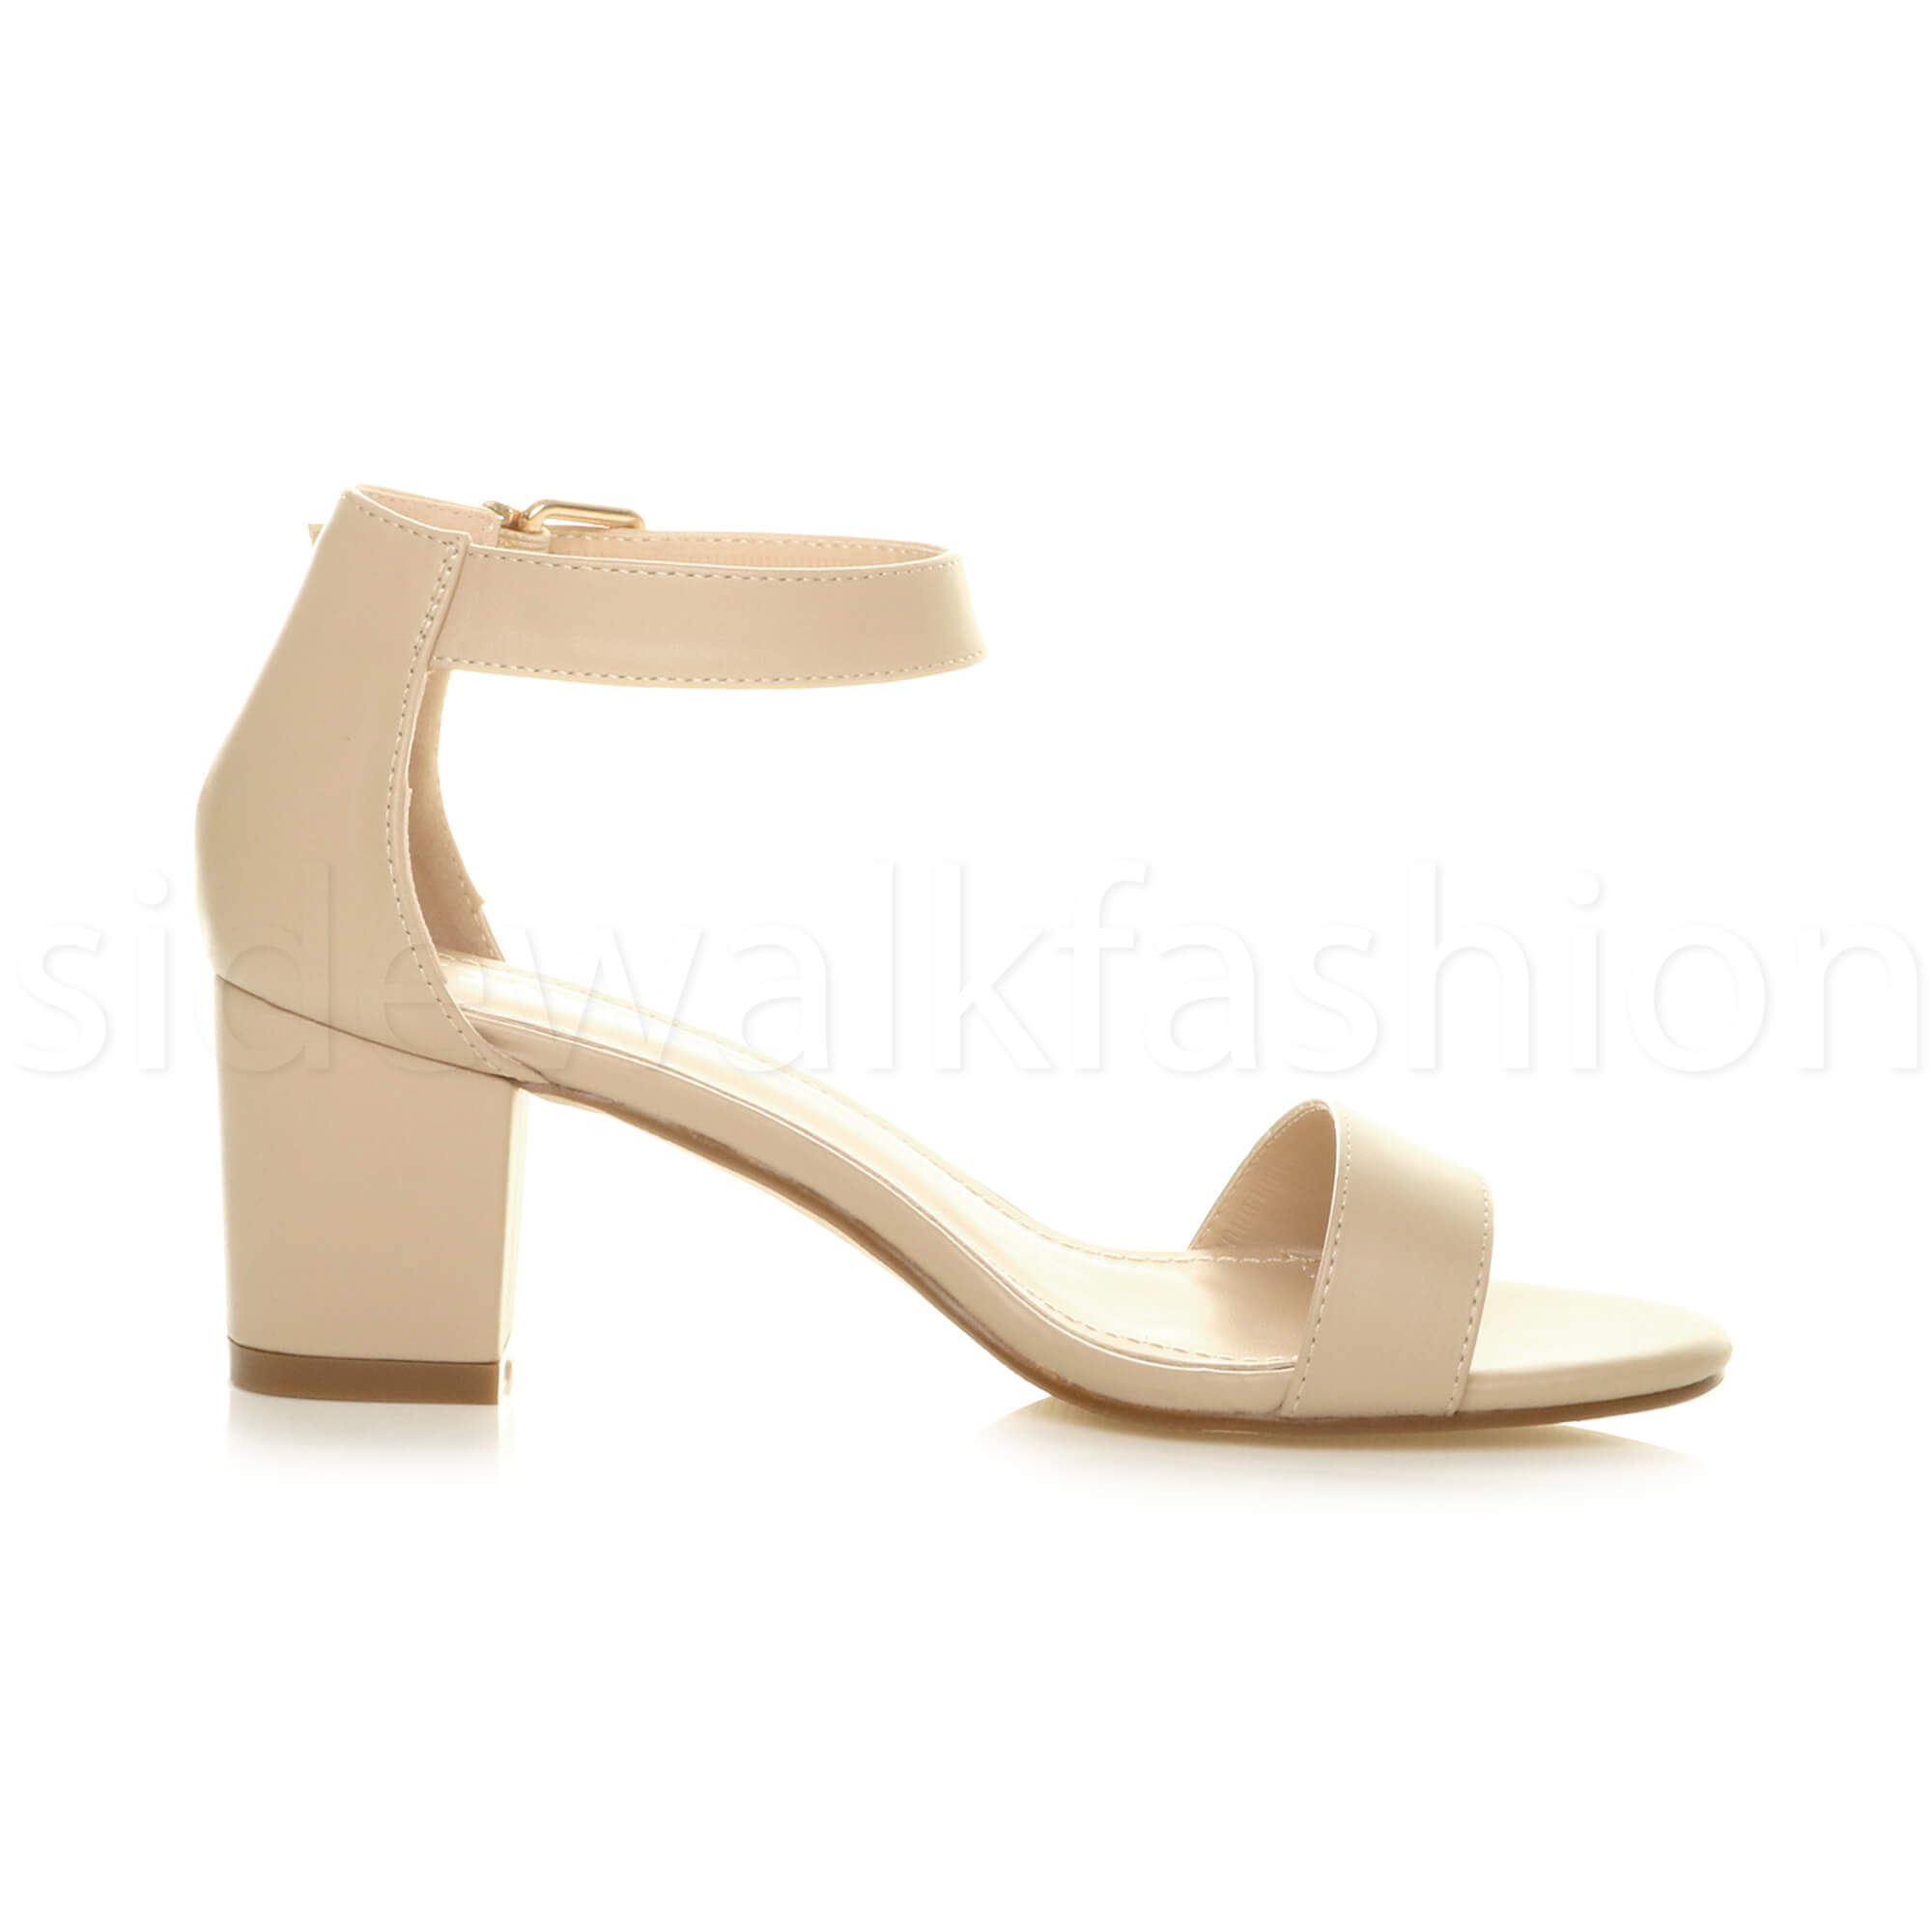 Womens-ladies-low-mid-heel-buckle-ankle-strap-peep-toe-party-strappy-sandal-size thumbnail 100